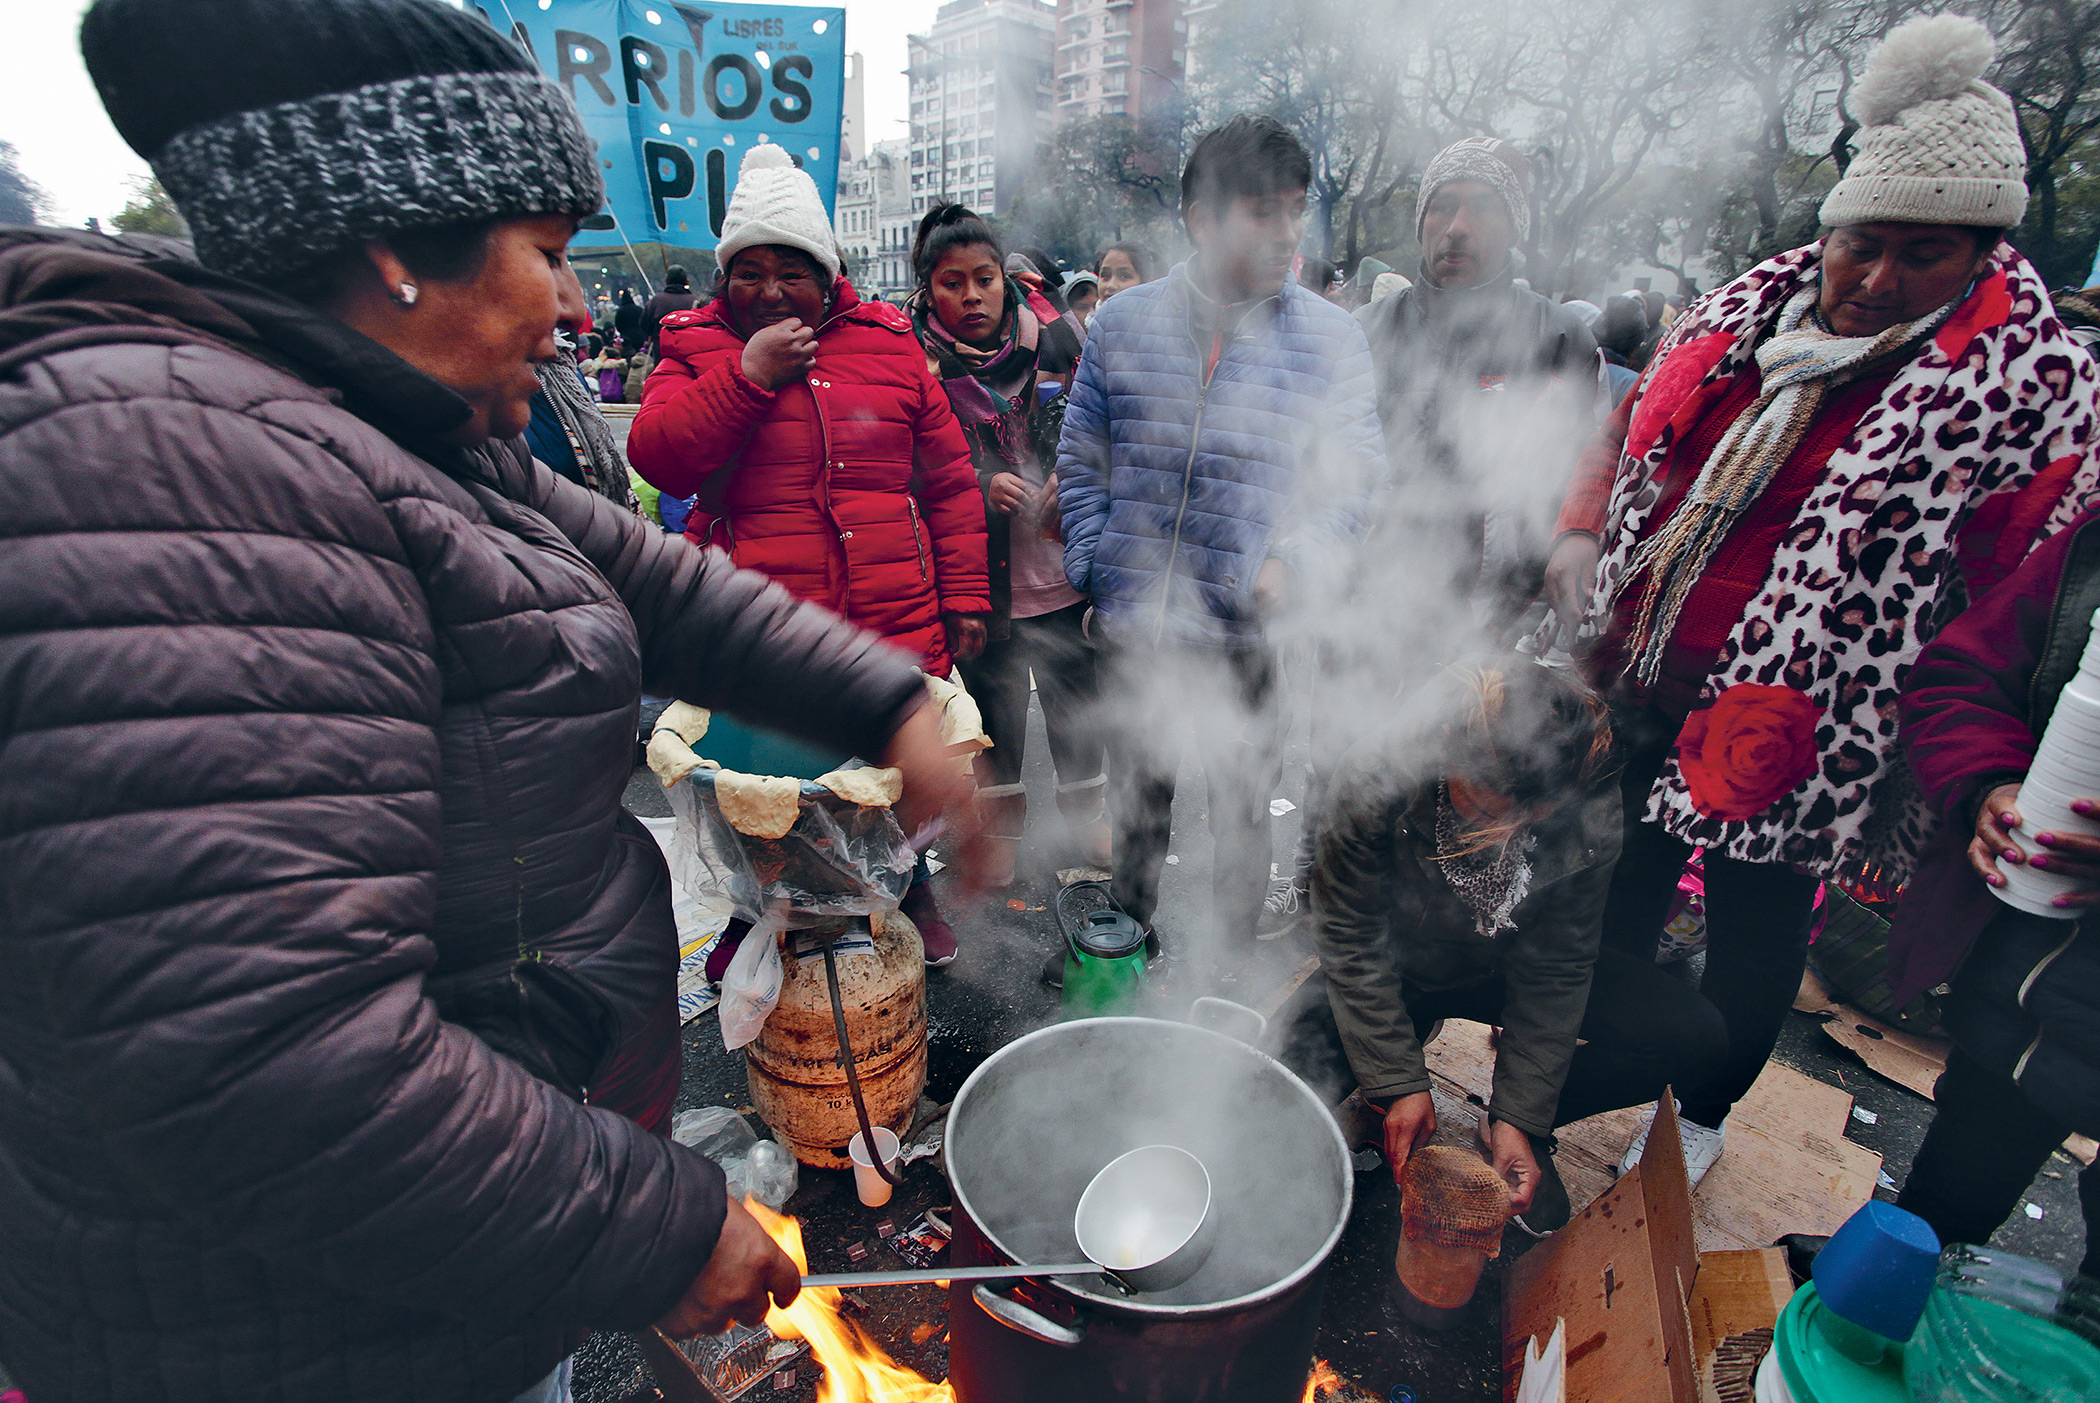 Protesters against Argentina's hunger crisis gather for a brew, 5 September 2019. They had camped out overnight in front of the Ministry of Social Development in Buenos Aires.